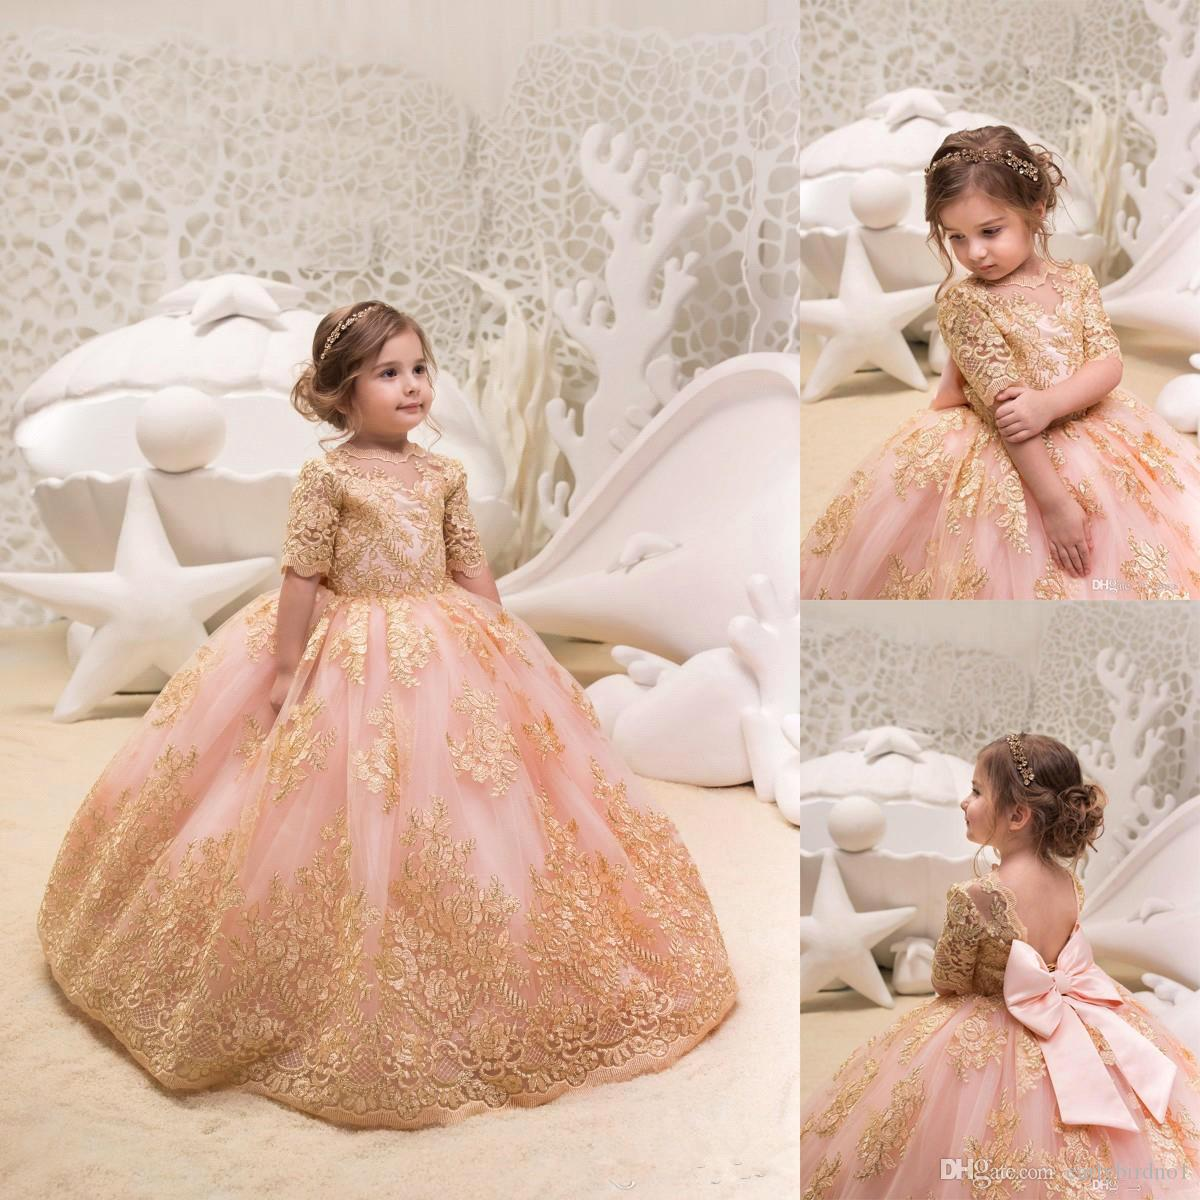 1fe746b046ea 2019 Newest Blush Pink Flower Girl Dresses with Big Bow Gold Applique Jewel  Neck Half Sleeves Girl's Pageant Party Gown BC0100